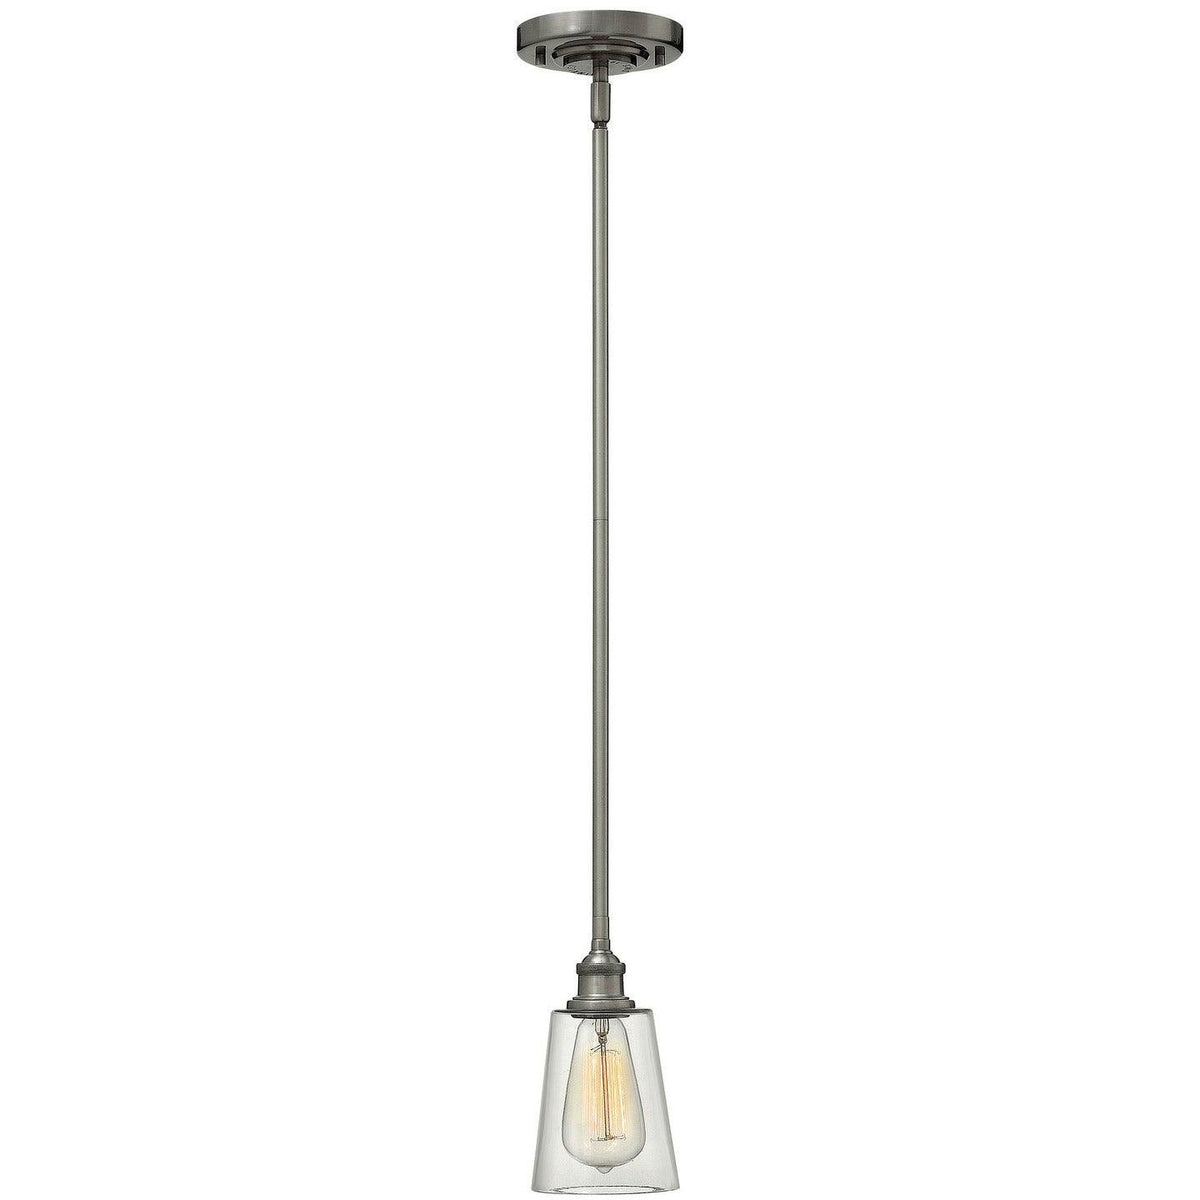 Hinkley Canada - 4937PL - One Light Pendant - Gatsby - Polished Antique Nickel